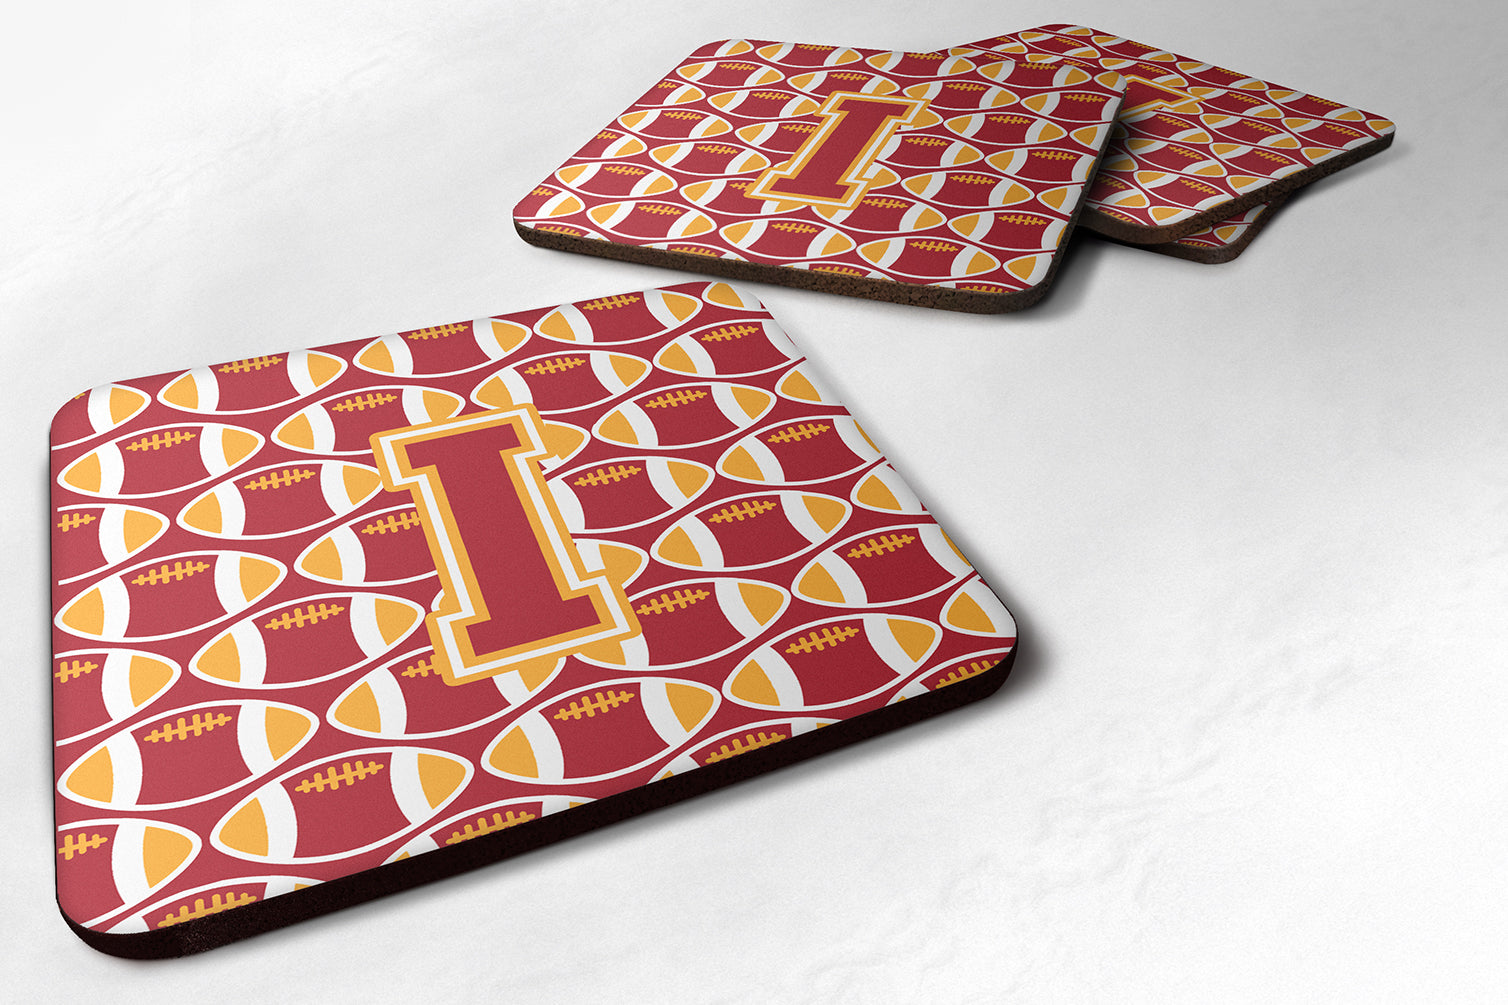 Letter I Football Cardinal and Gold Foam Coaster Set of 4 CJ1070-IFC by Caroline's Treasures